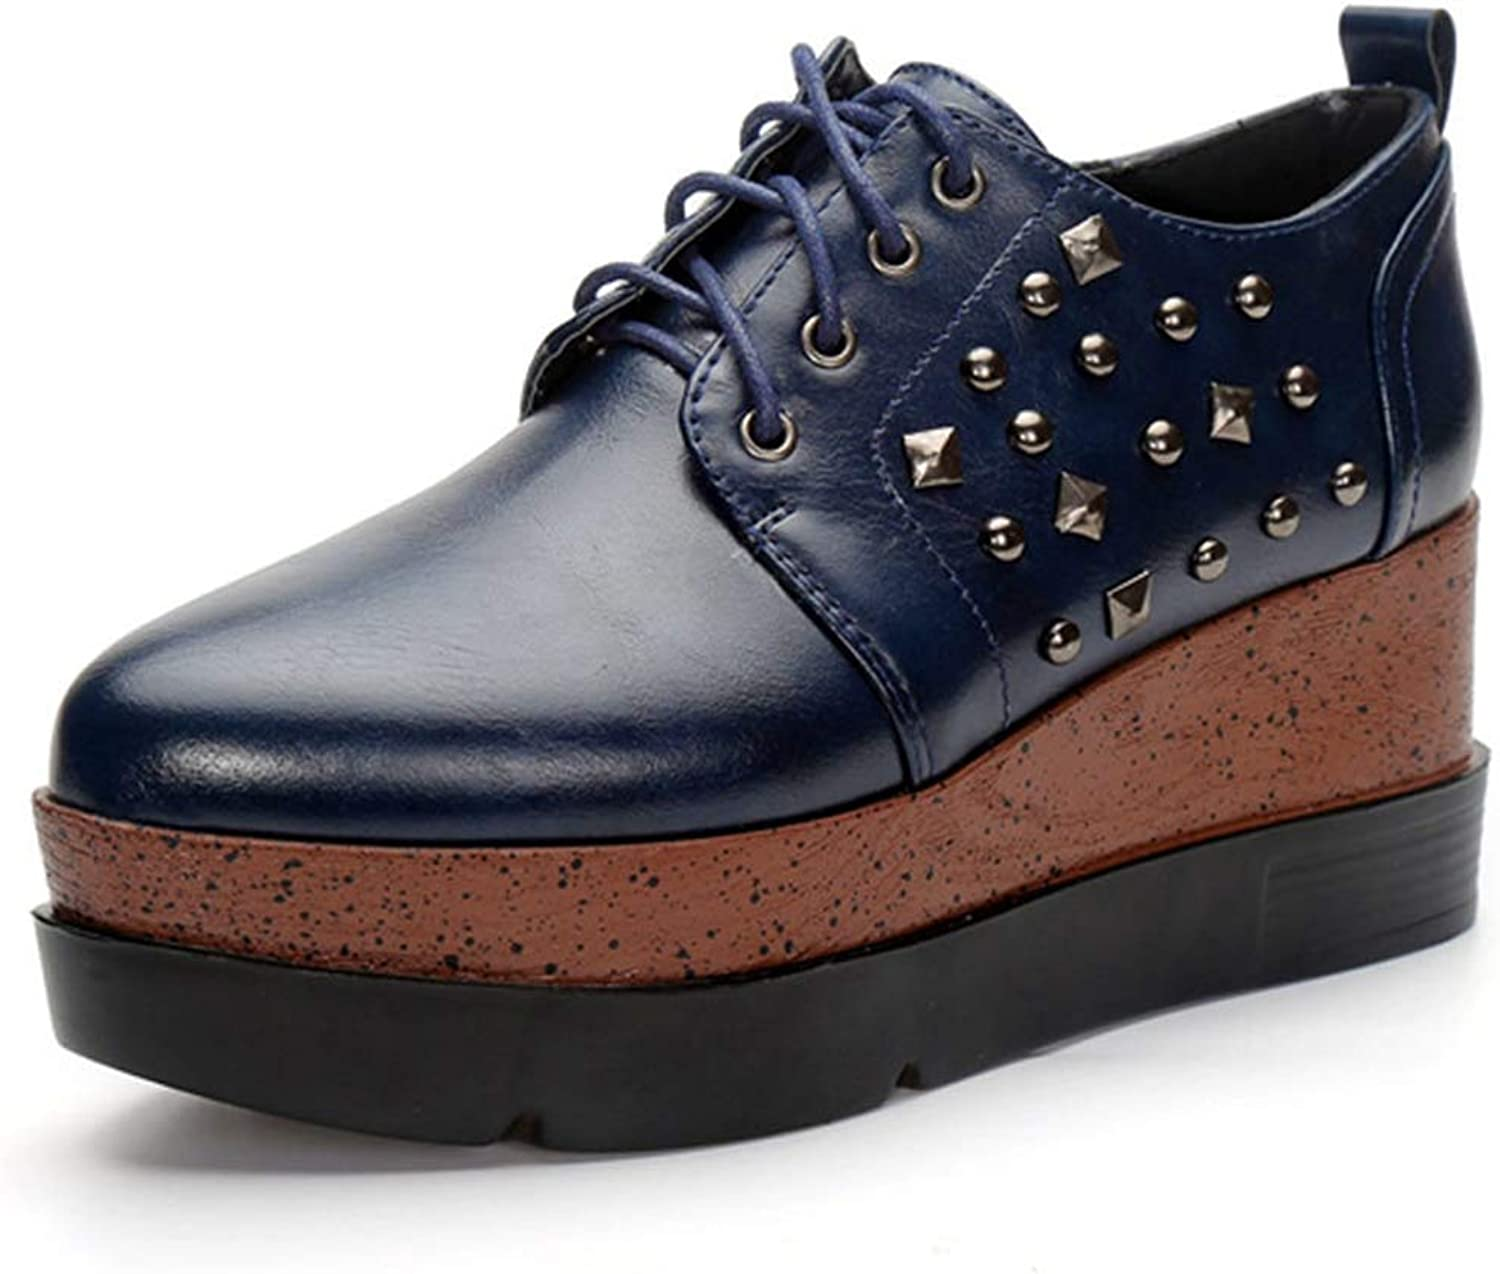 CYBLING Women's Fashion Rivet Platform Wedges Sneakers High Heel Pointed Toe Lace-up Oxford shoes